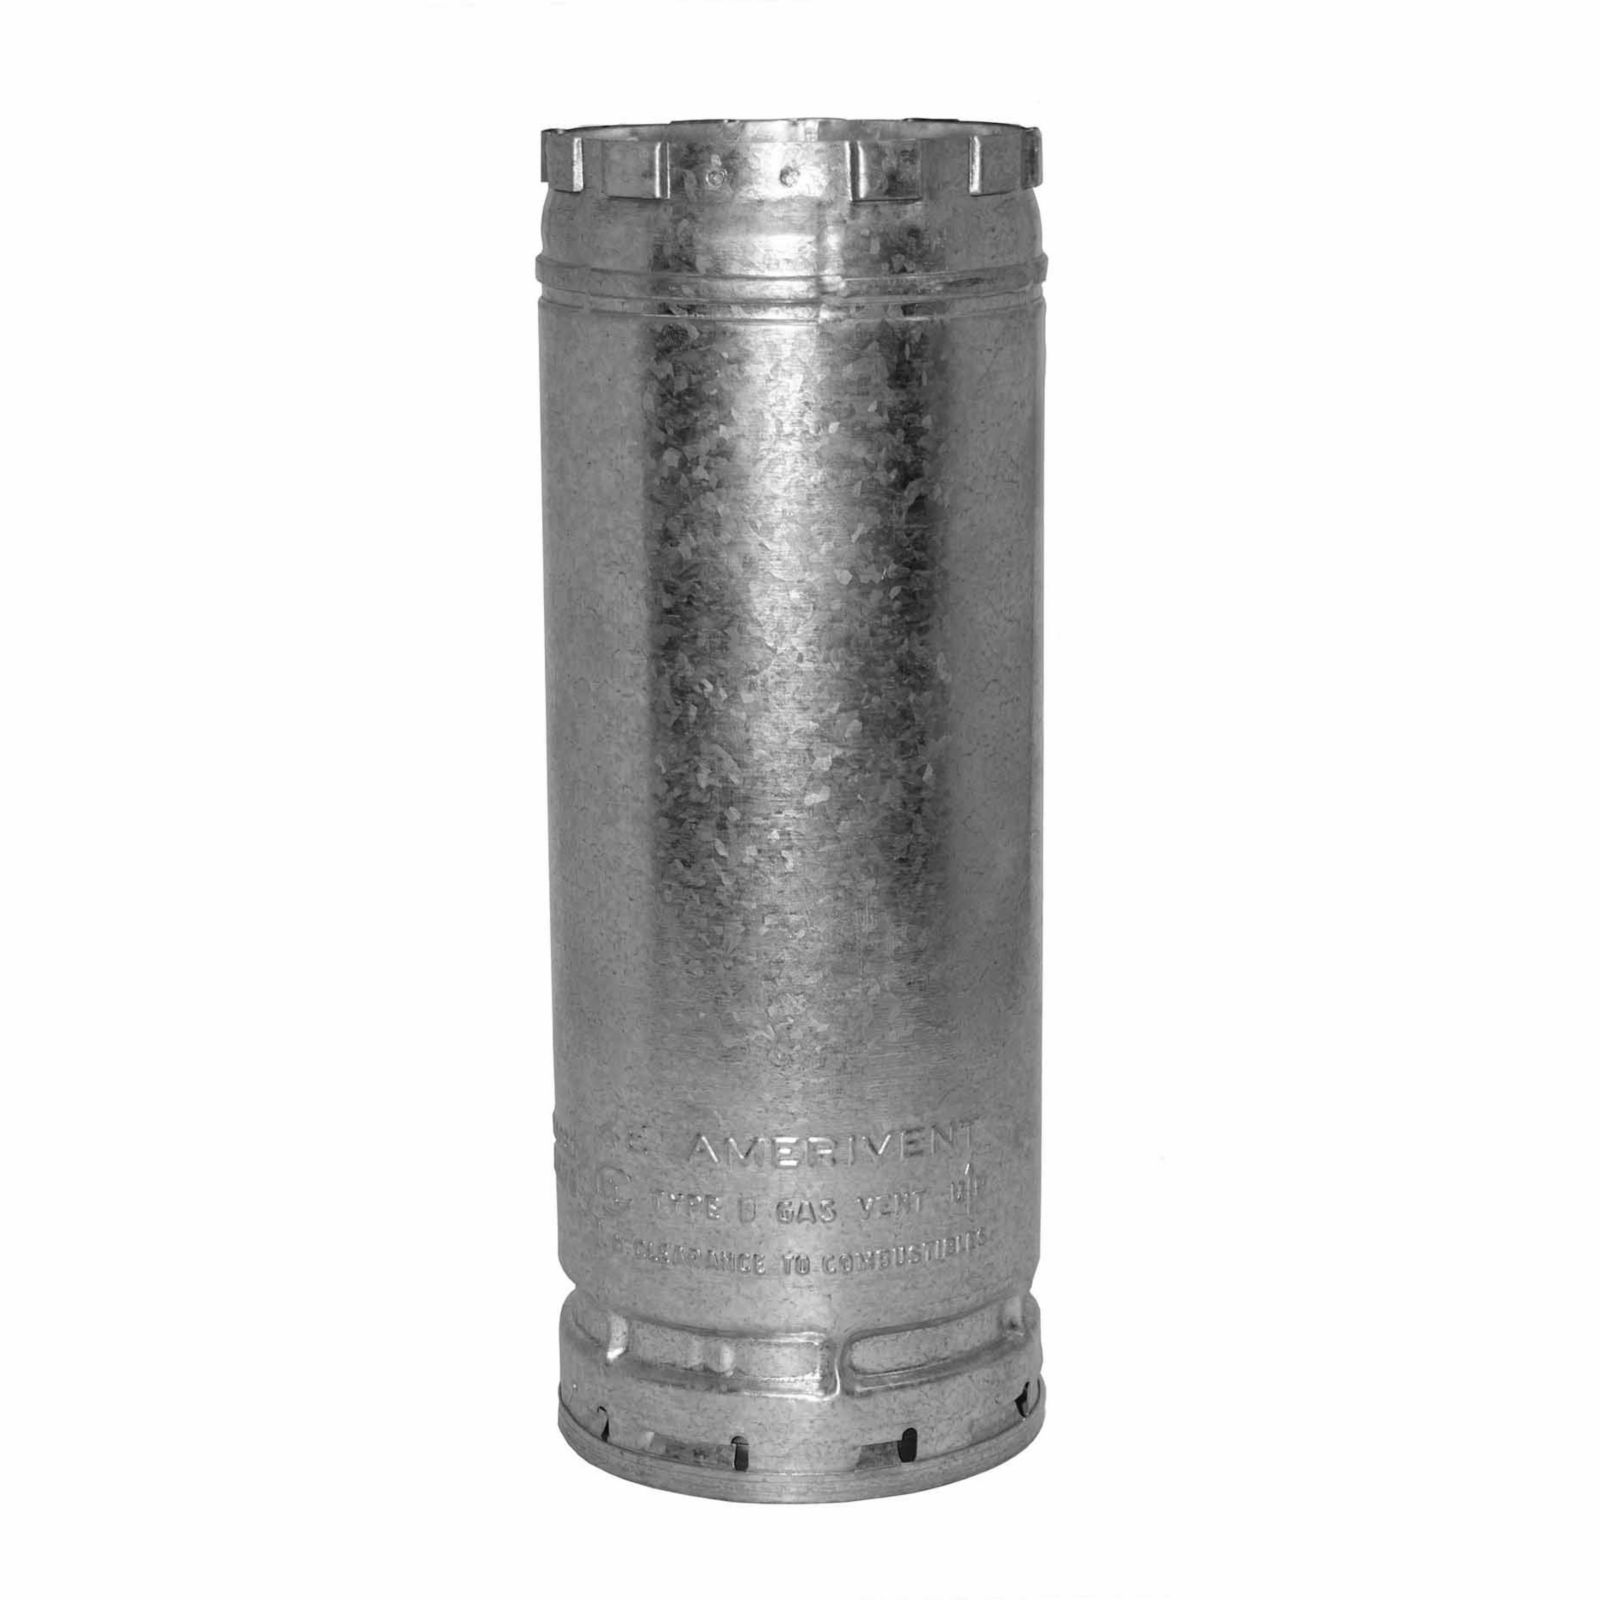 "AmeriVent 5E5 - Pipe Section Type B Gas Vent, 5"" Round X 60"" Length"